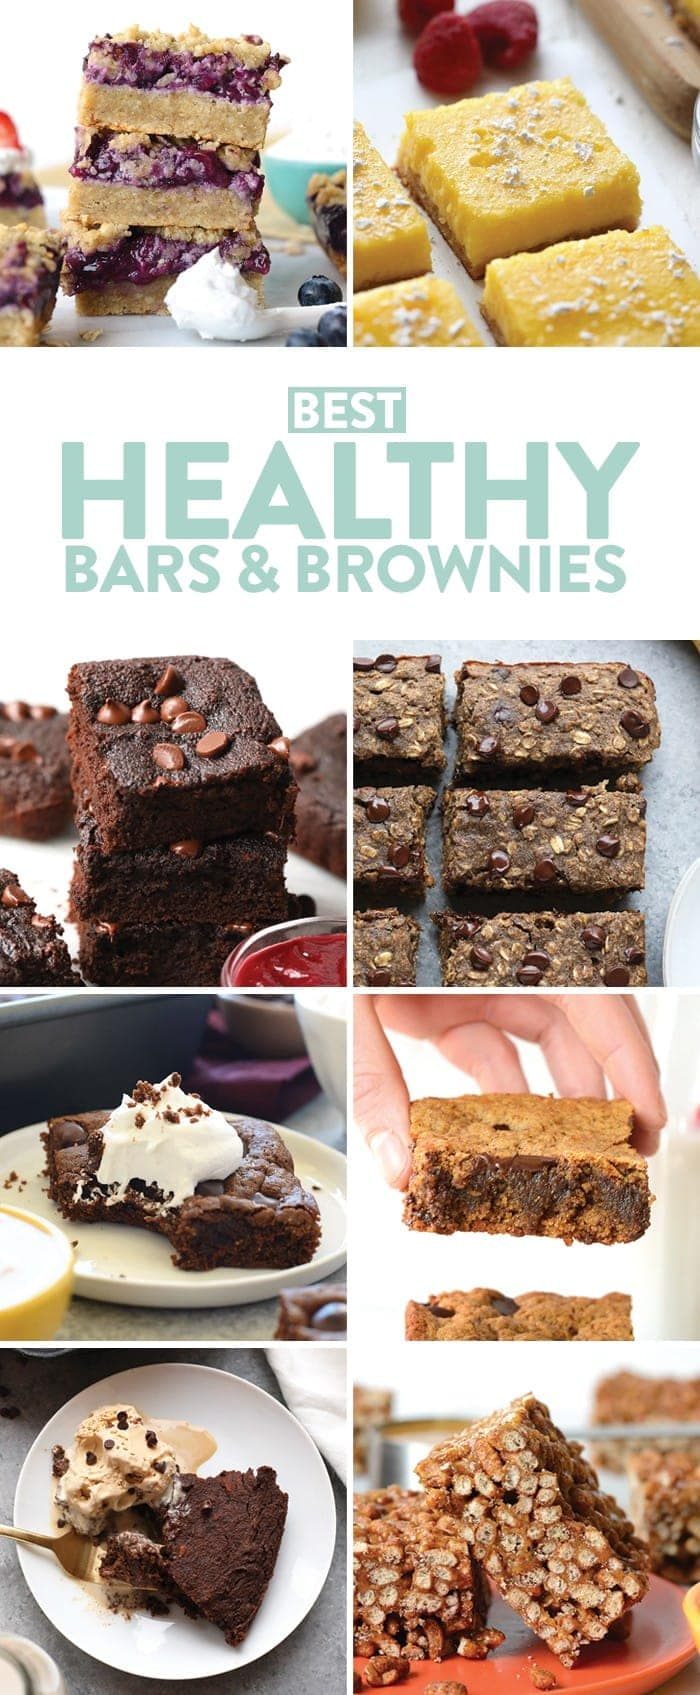 Healthy bars and brownies